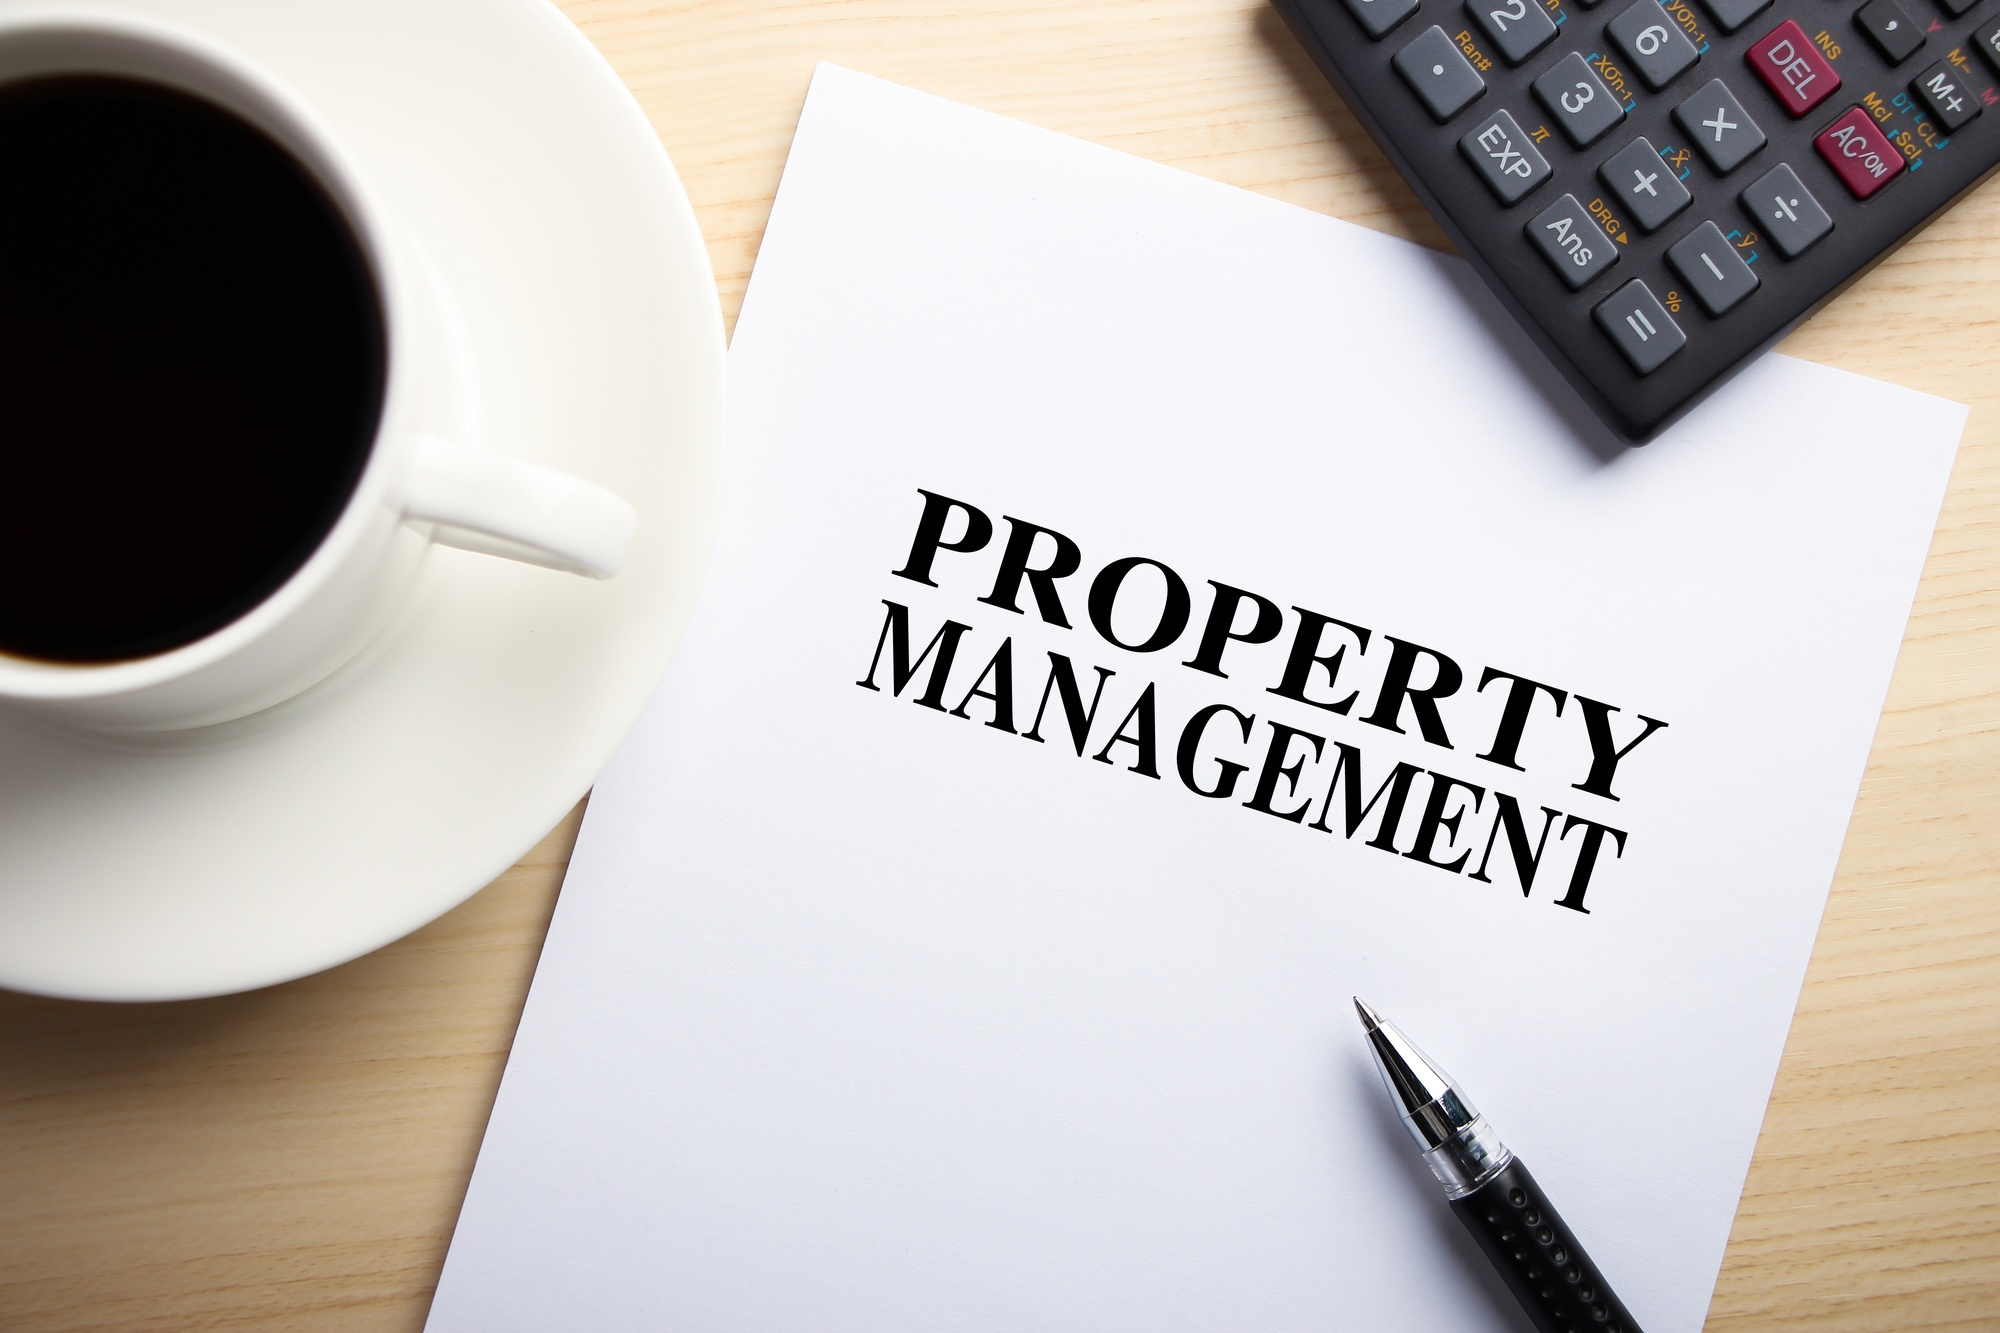 5 Tips To Choose a Property Management Strategy